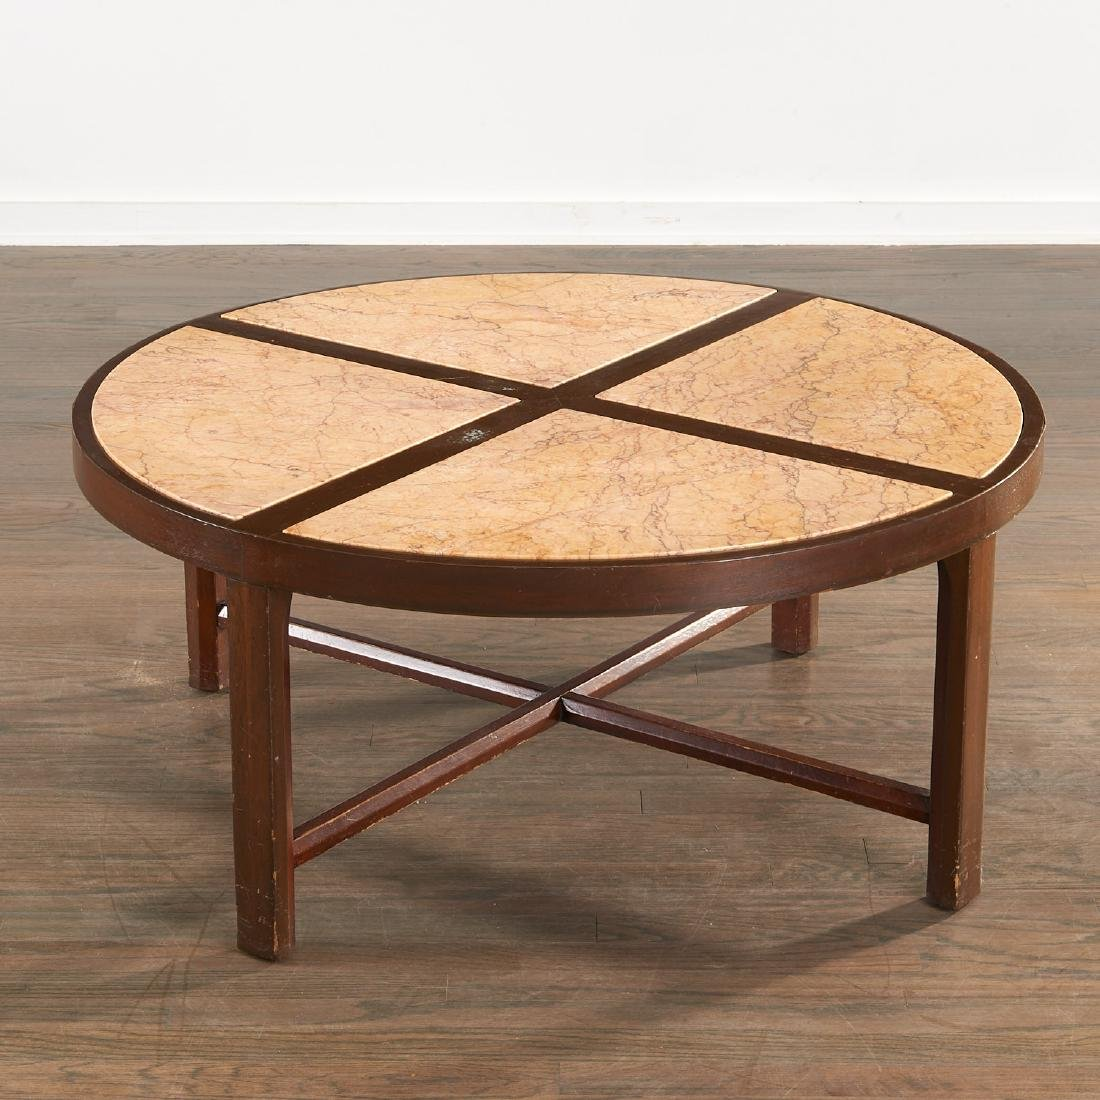 Tommi Parzinger coffee table